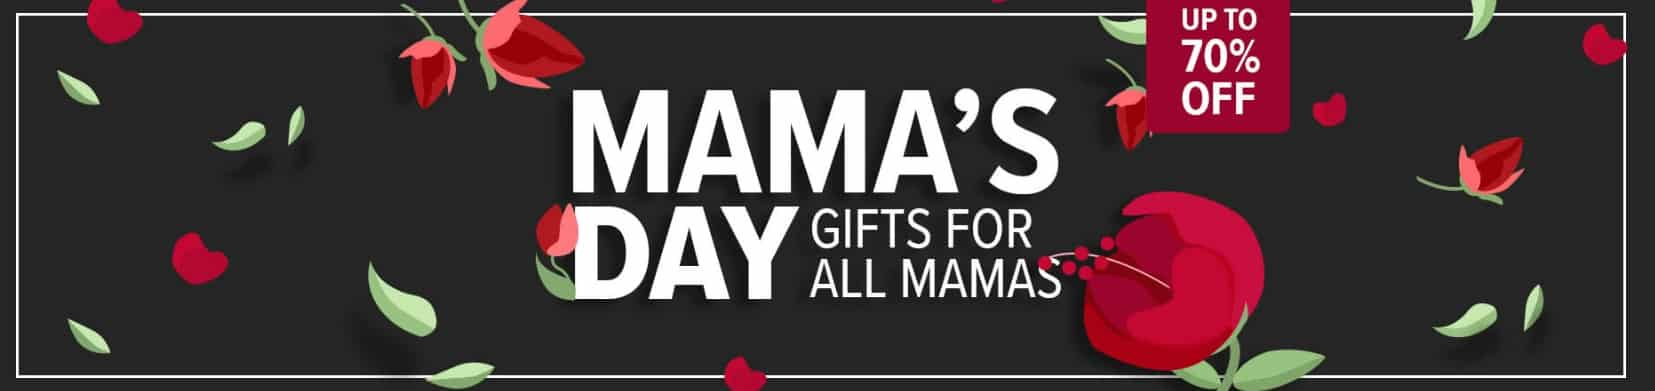 Lazada Mother's Day 2018